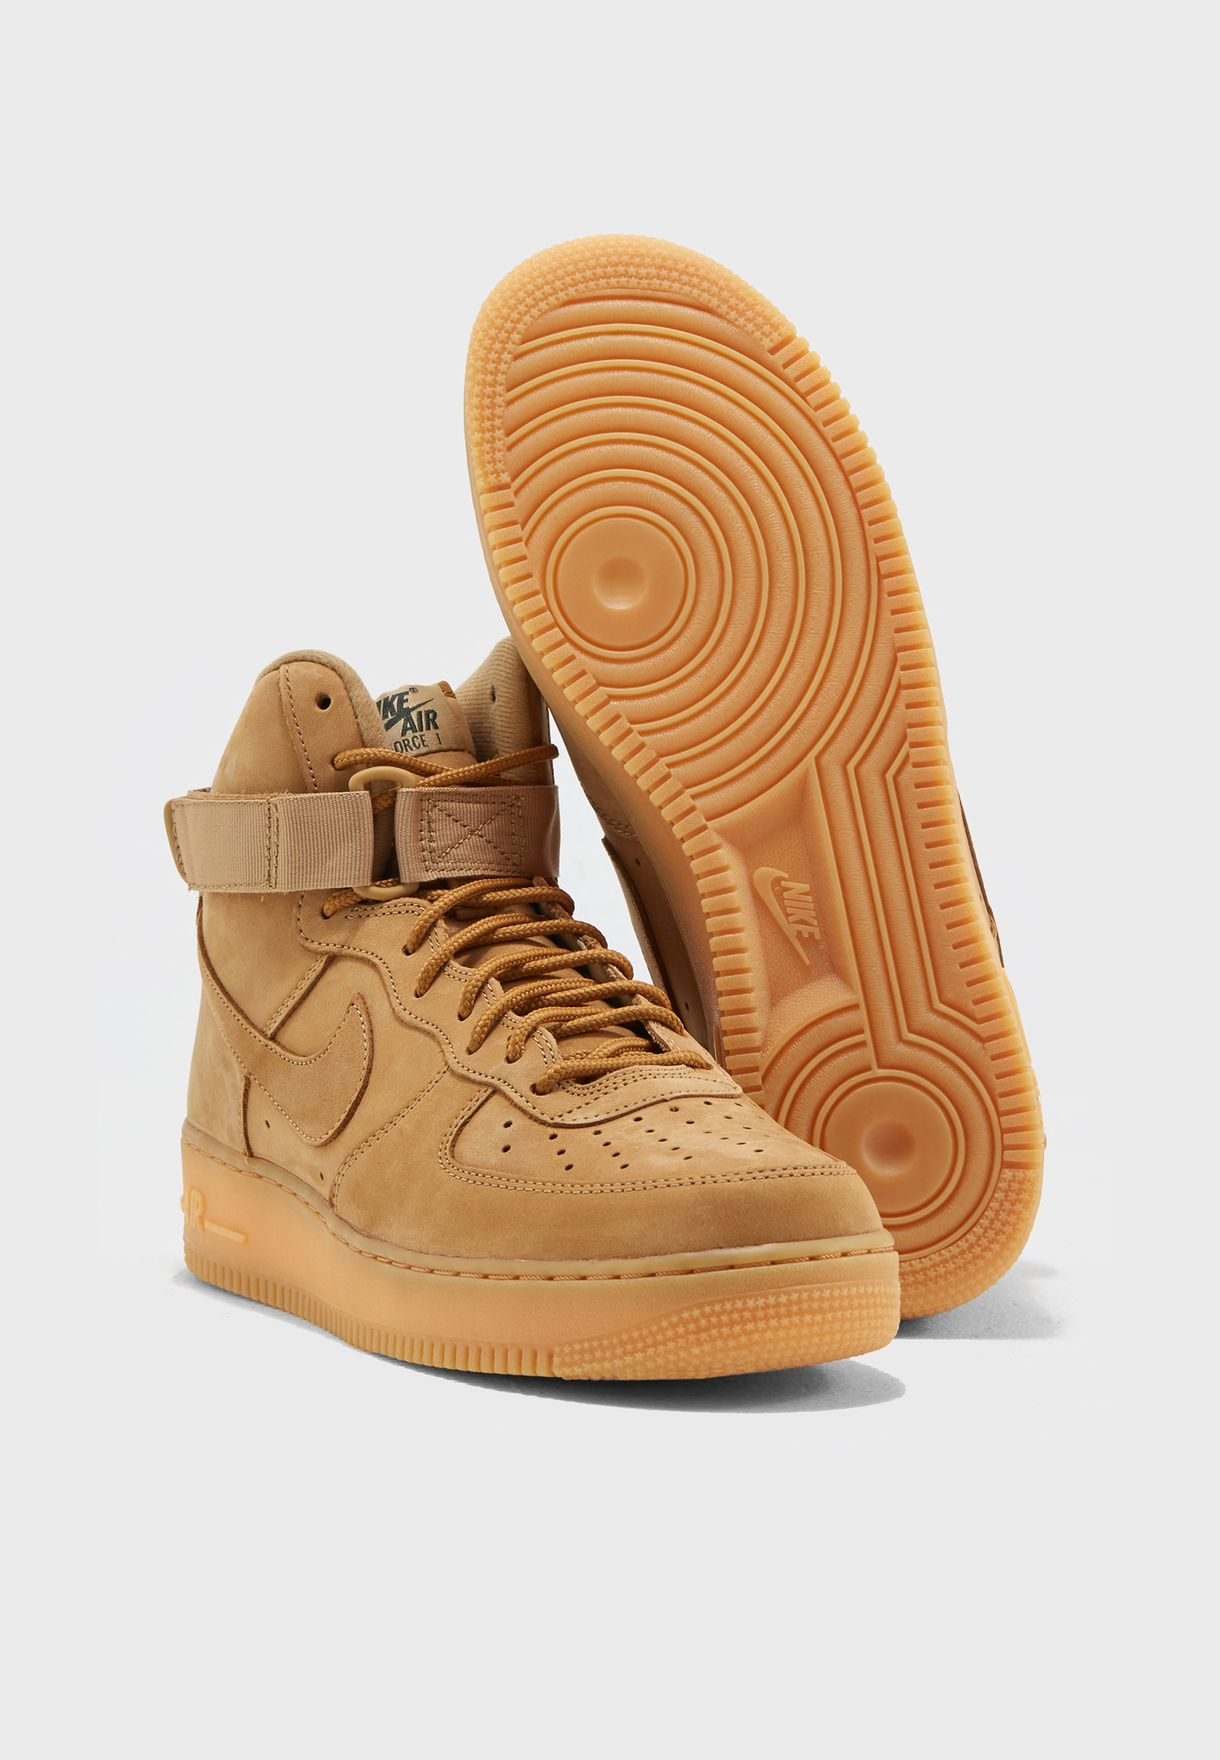 Shop Nike browns Air Force 1 High   39 07 LV8 WB 882096-200 for Men ... aa3a65a3e